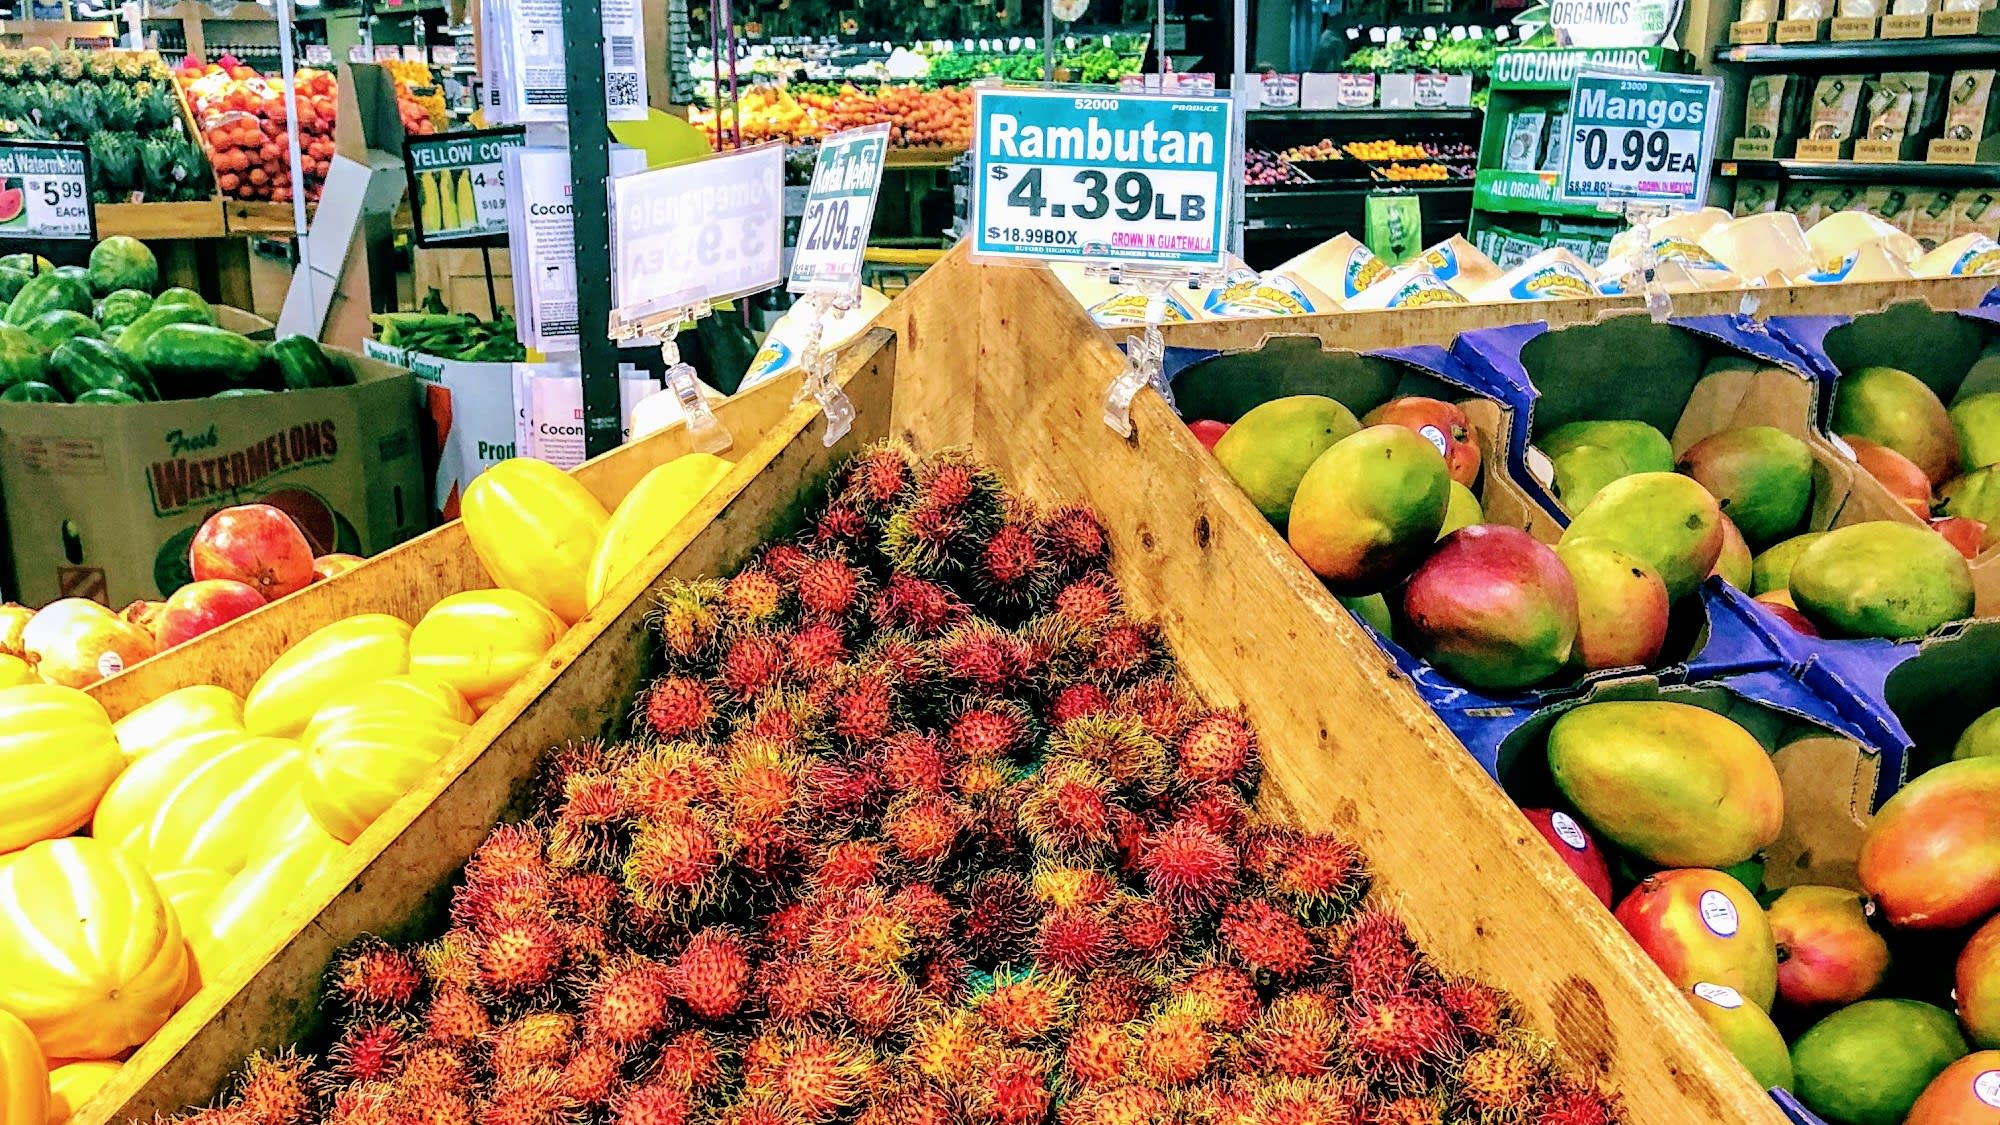 Display of colorful fruits -- rambutan, mango and watermelon -- at Buford Highway Farmers Market